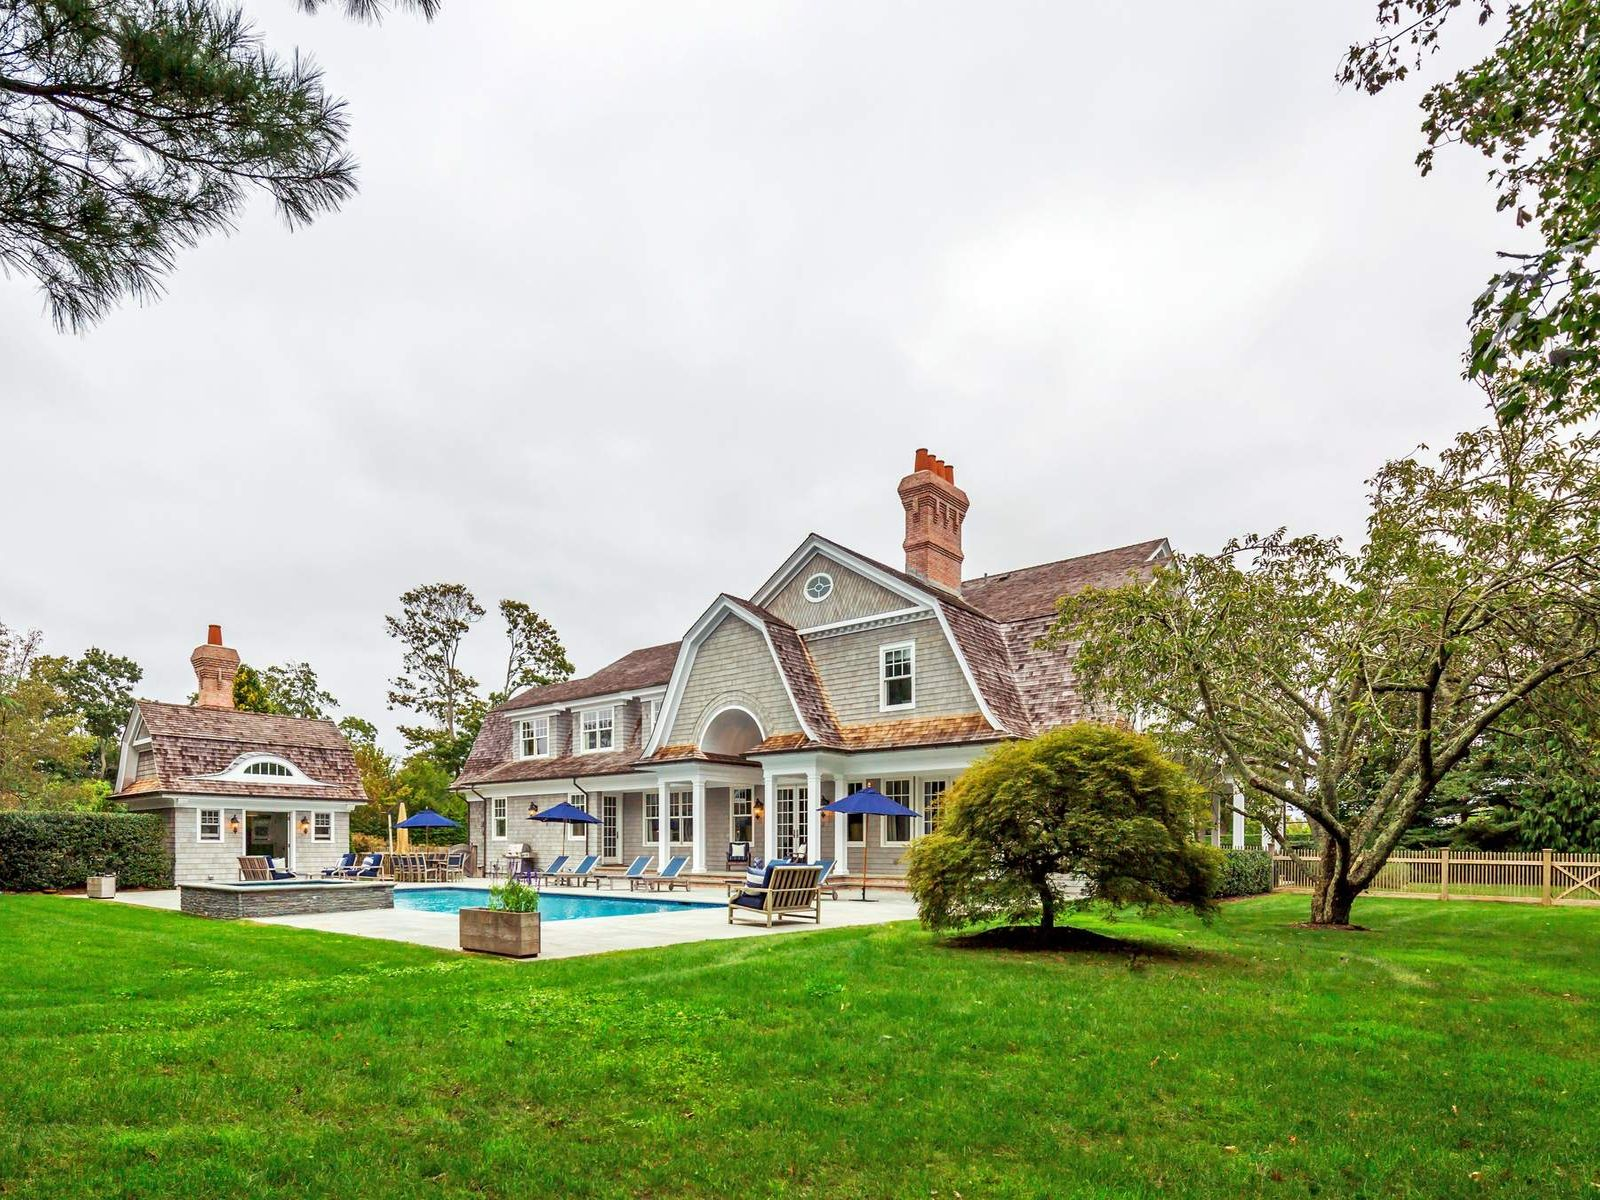 Bridgehampton South, Bridgehampton NY Single Family Home - Hamptons Real Estate